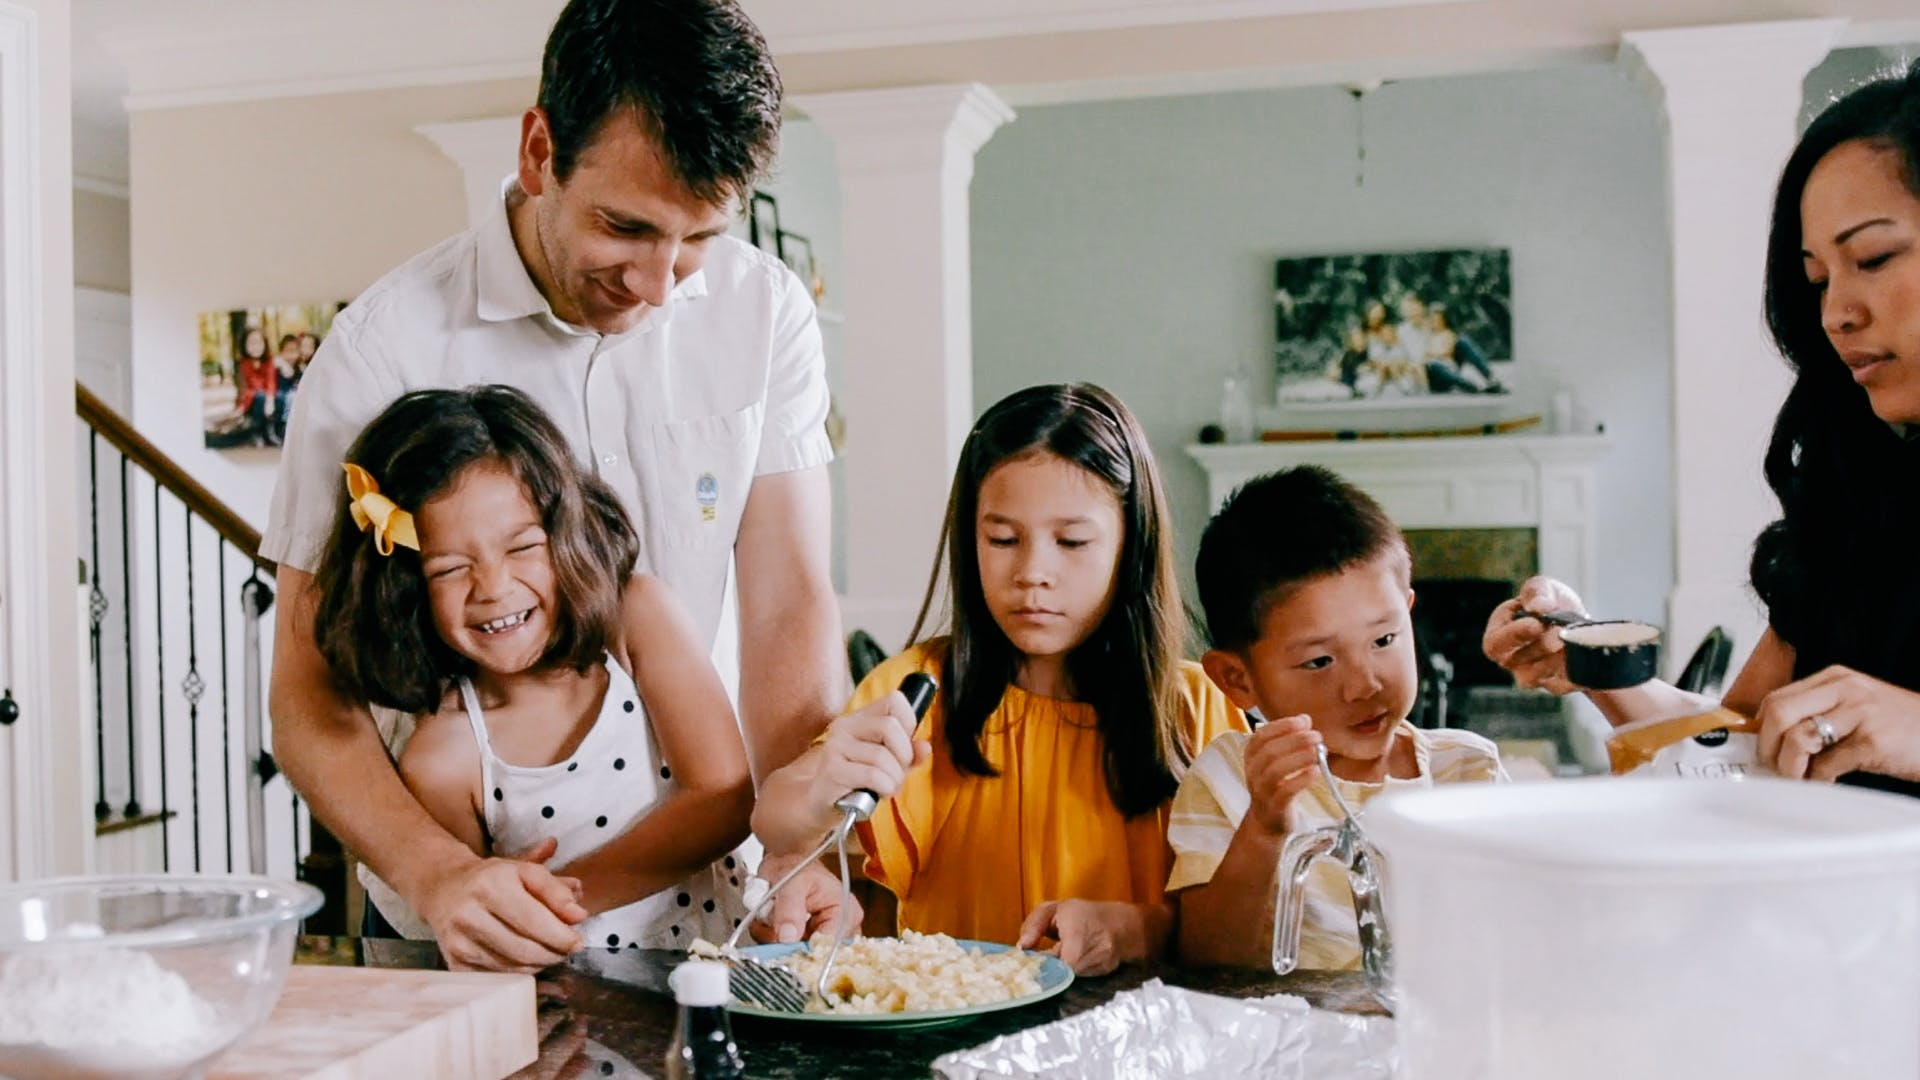 Professional portrait and wedding photographers Phillip and Eileen Blume creating work-life balance at home with their children